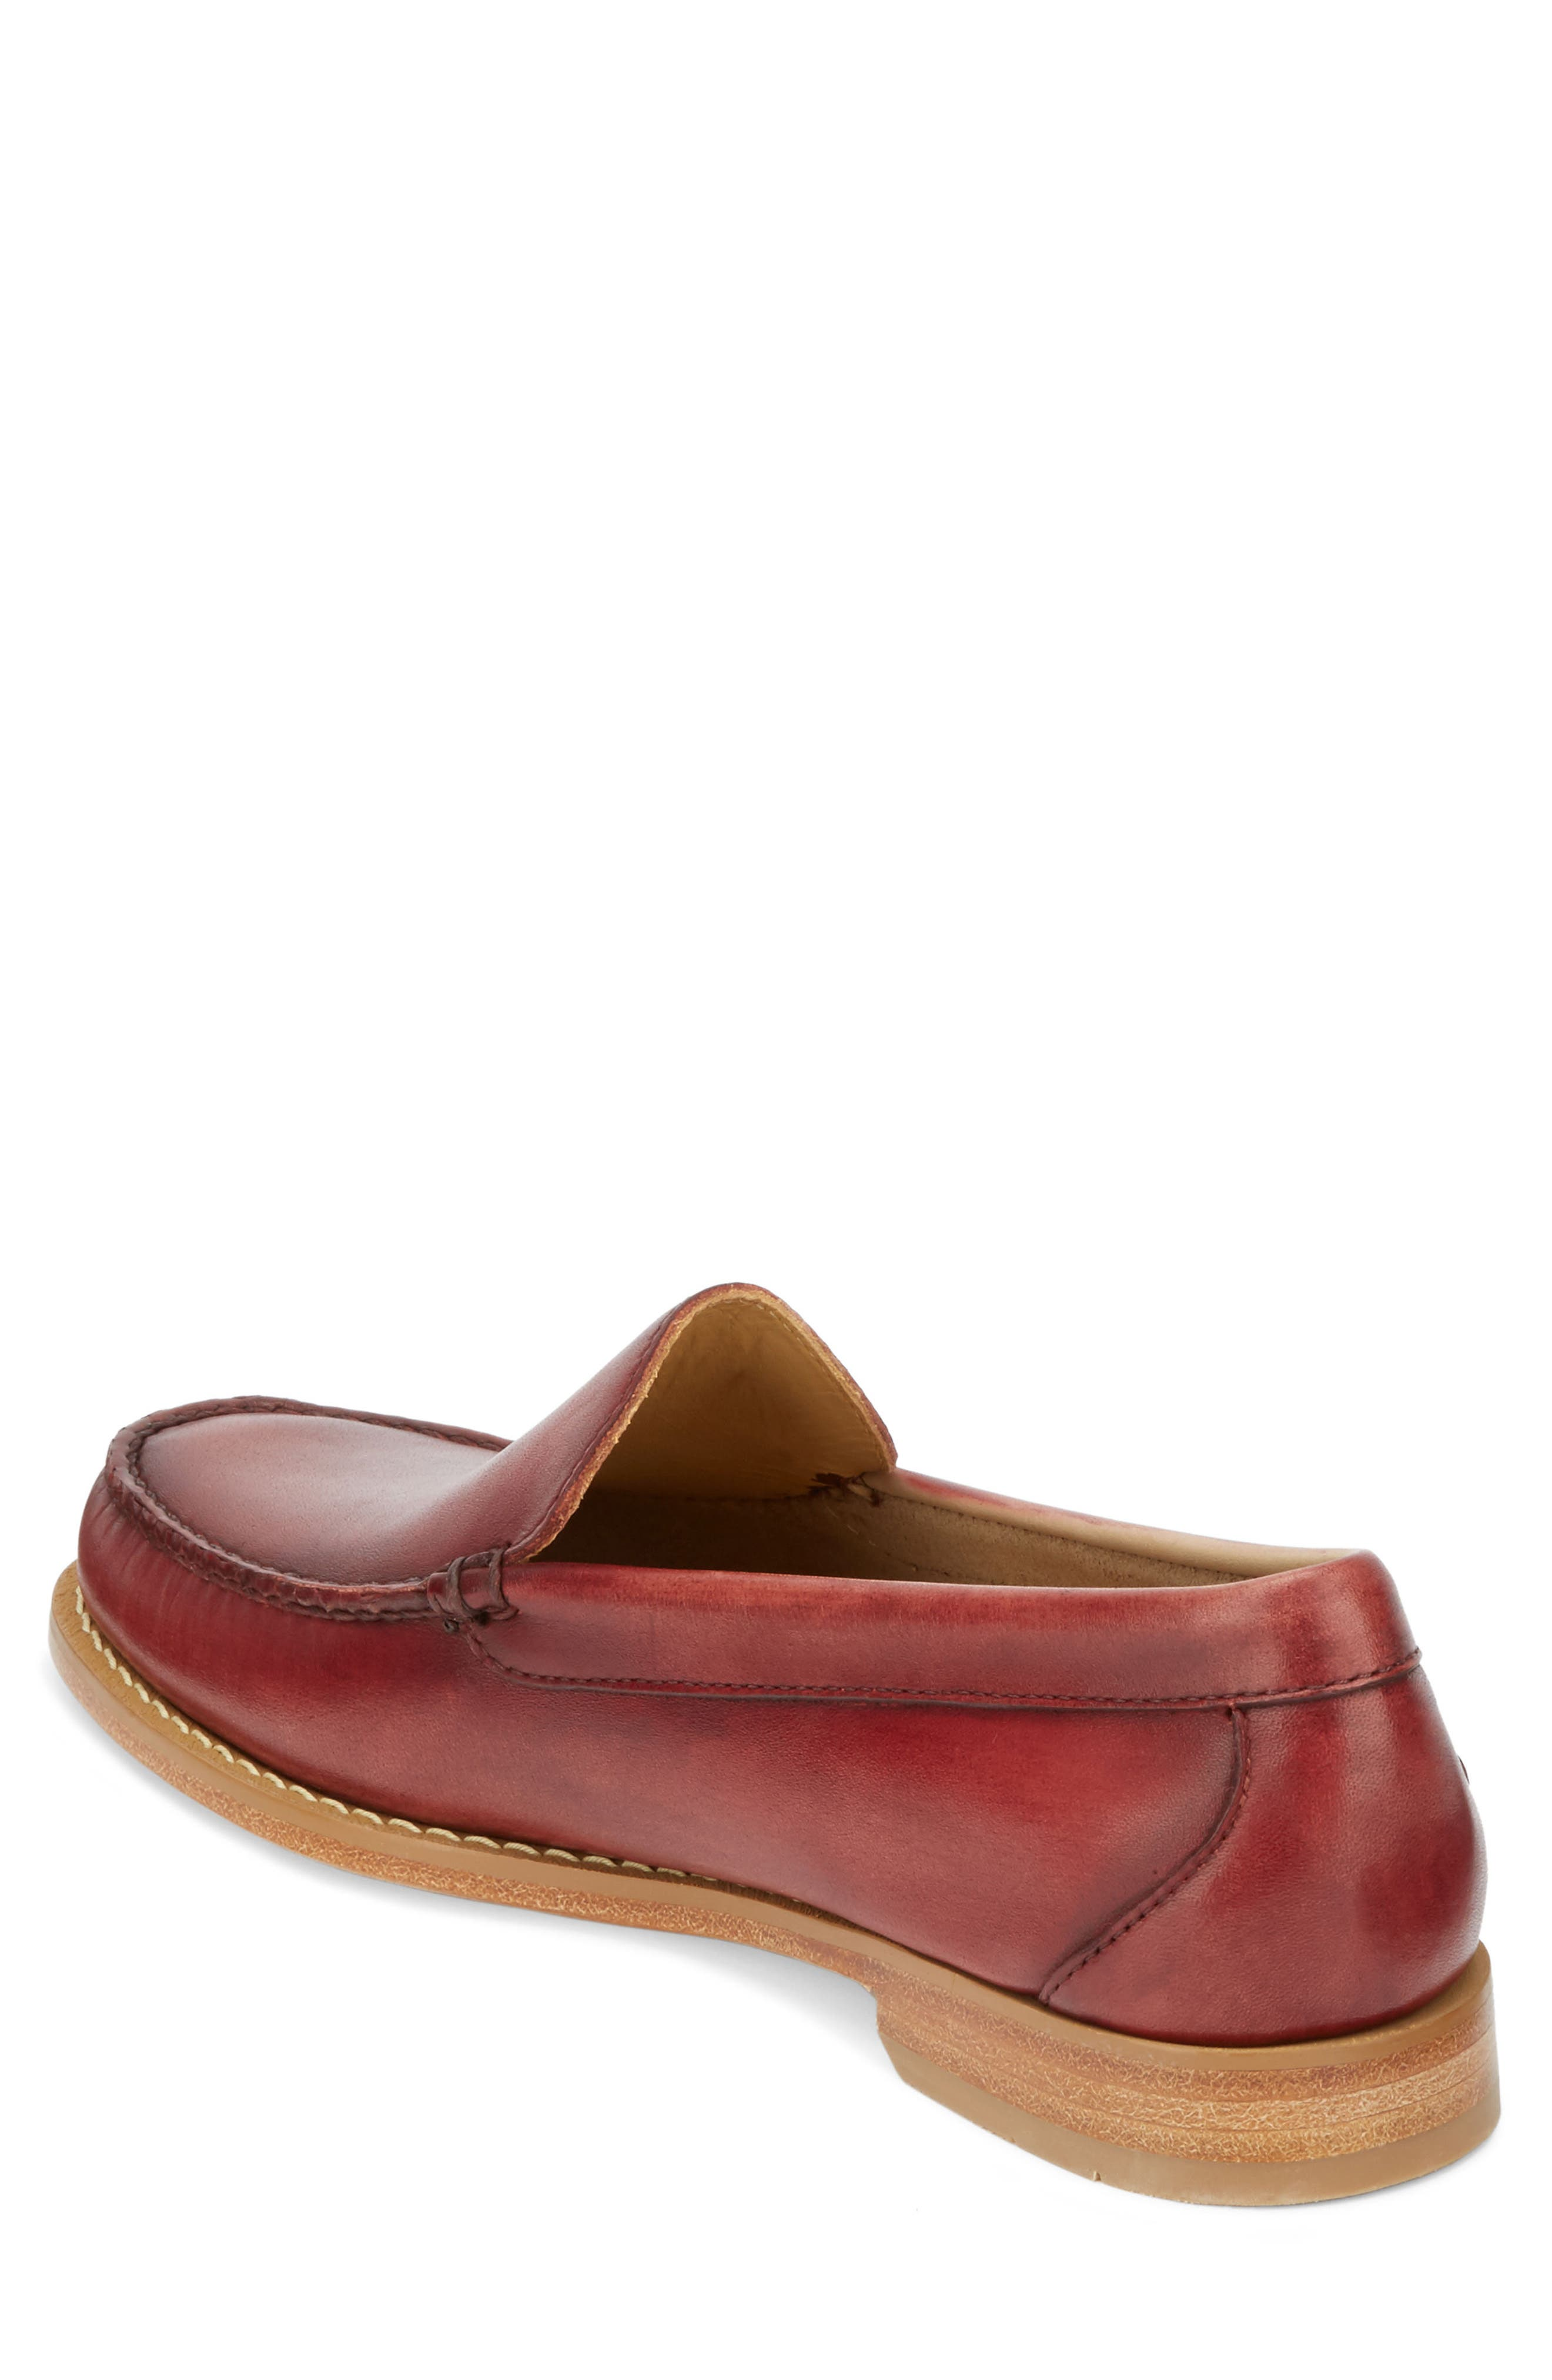 Moc Toe Loafer,                             Alternate thumbnail 2, color,                             Red Leather